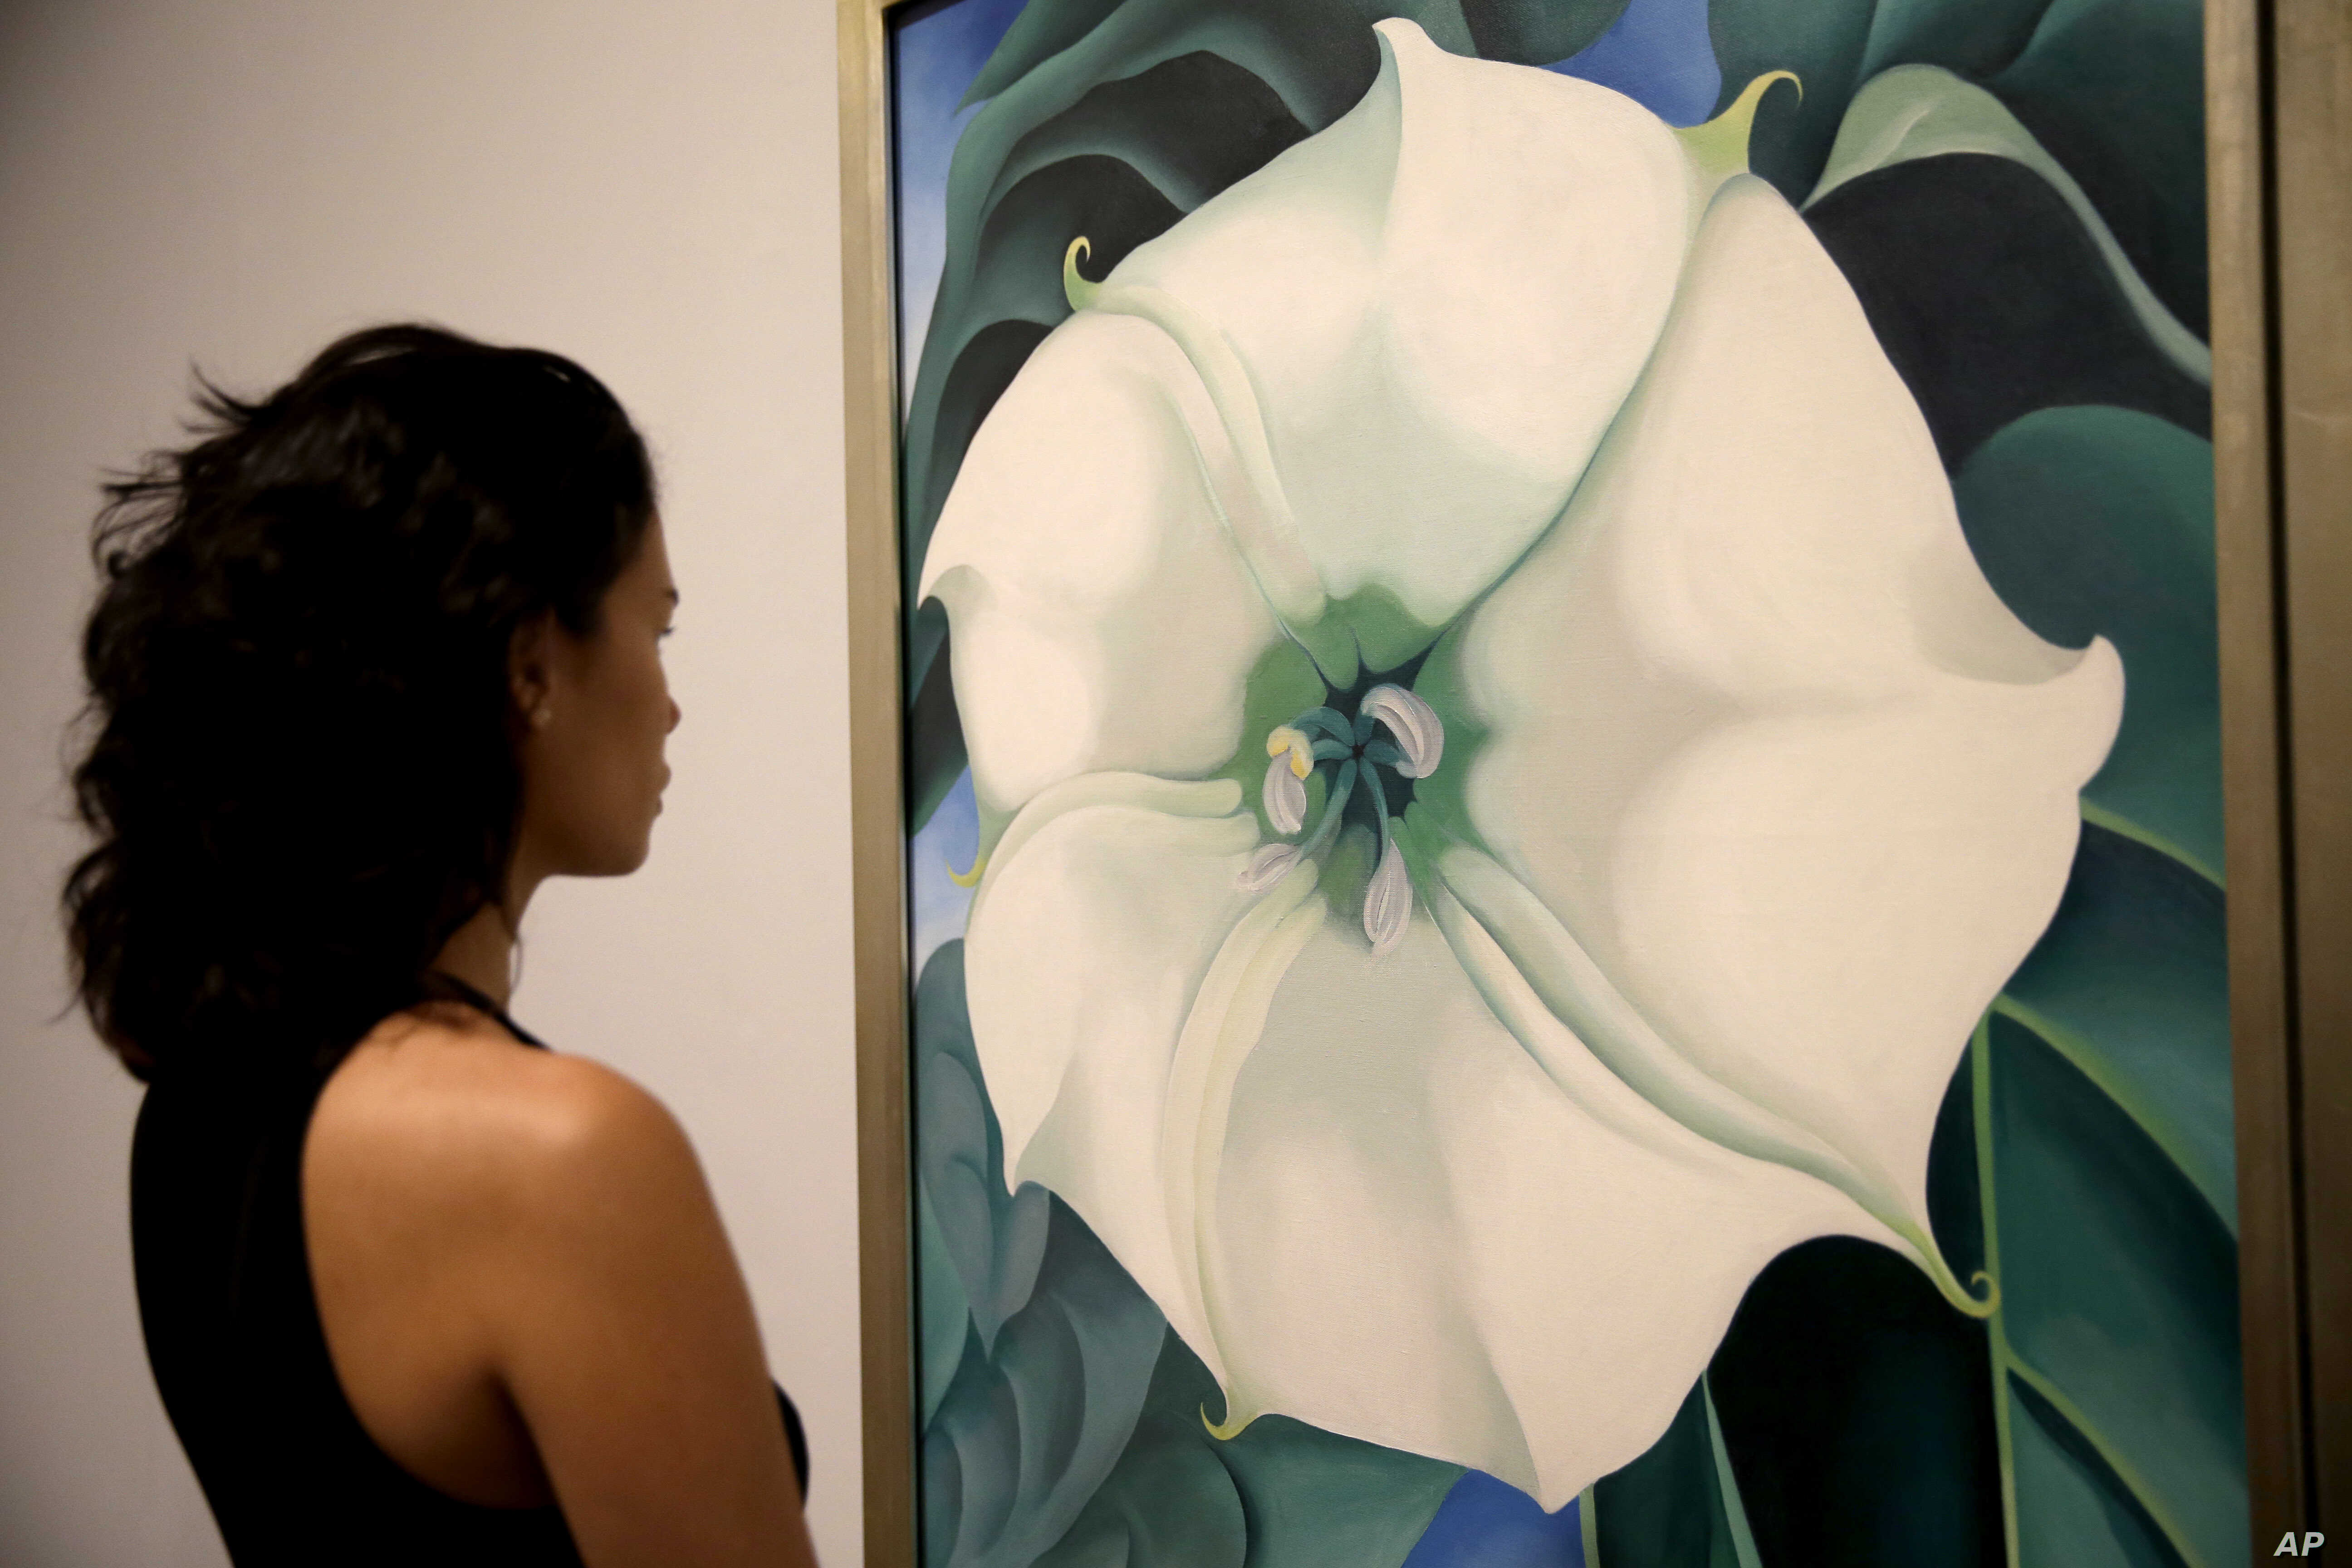 """A Tate Modern representative poses for photographs next to """"Jimson Weed/White Flower No.1"""" by American artist Georgia O'Keeffe at a press launch for her retrospective exhibition of over 100 works at the Tate Modern gallery in London, July 4, 2016."""